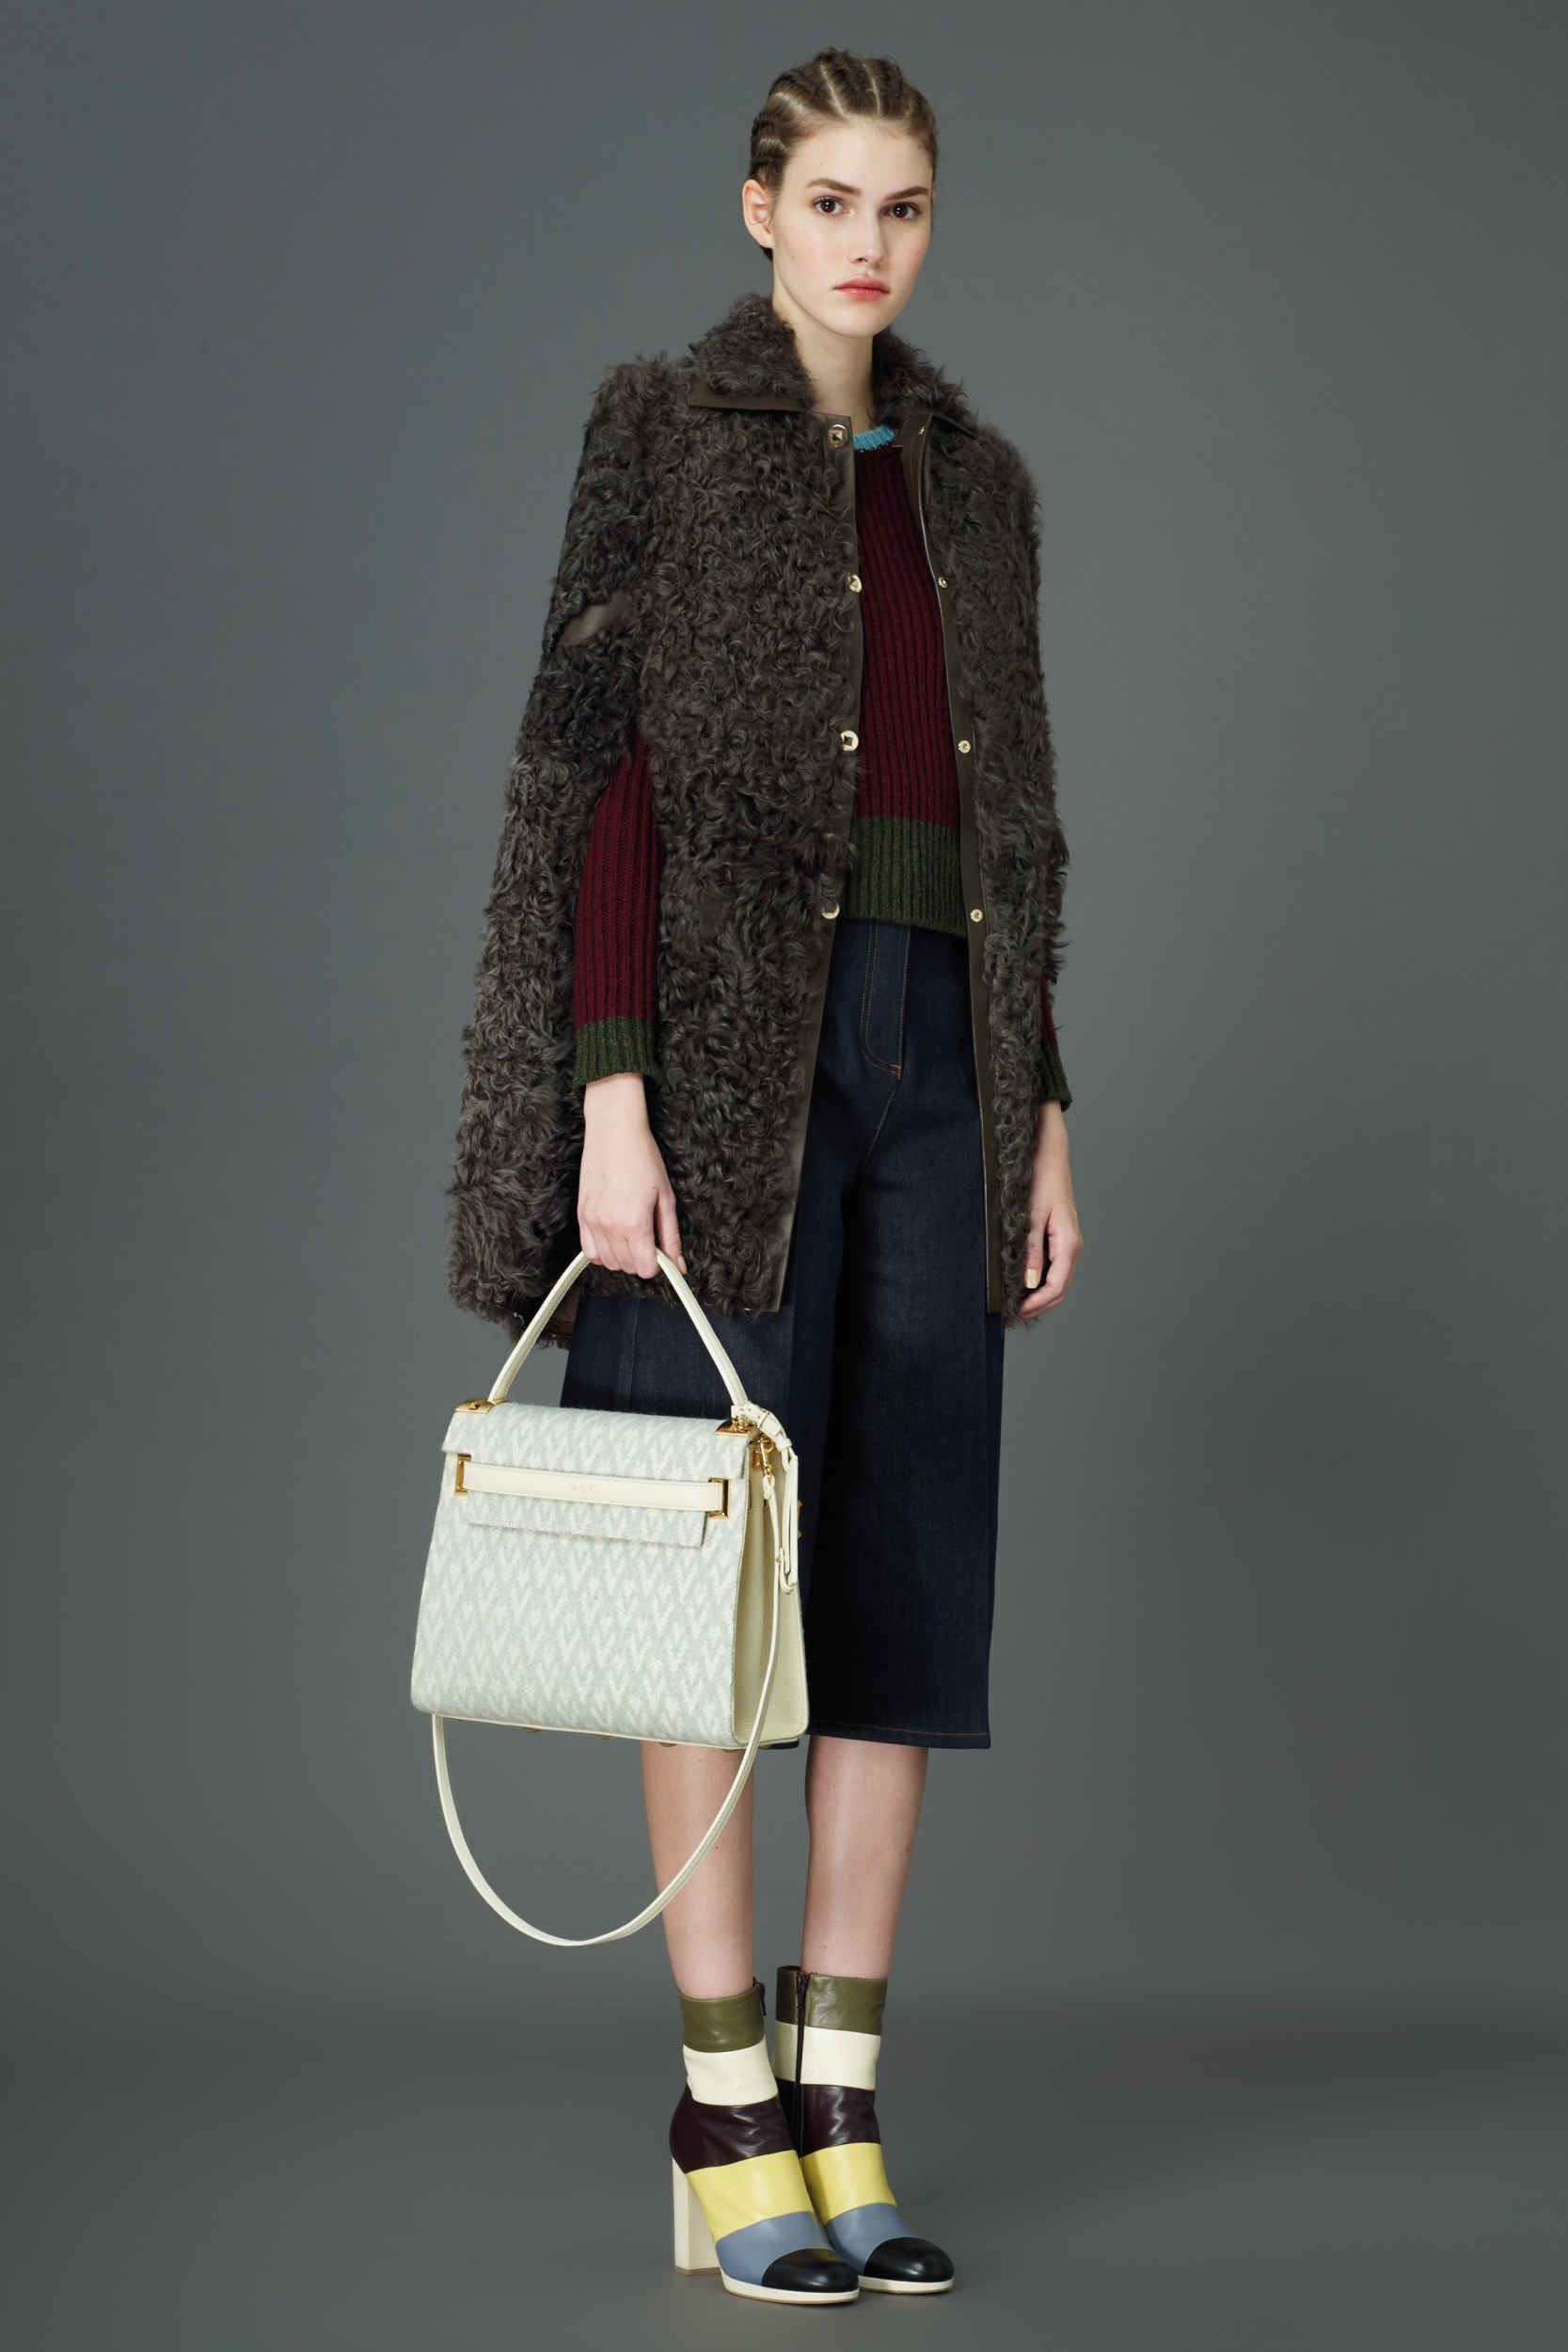 Valentino Does Stars, Stripes and Lots More for Pre-Fall - Fashionista